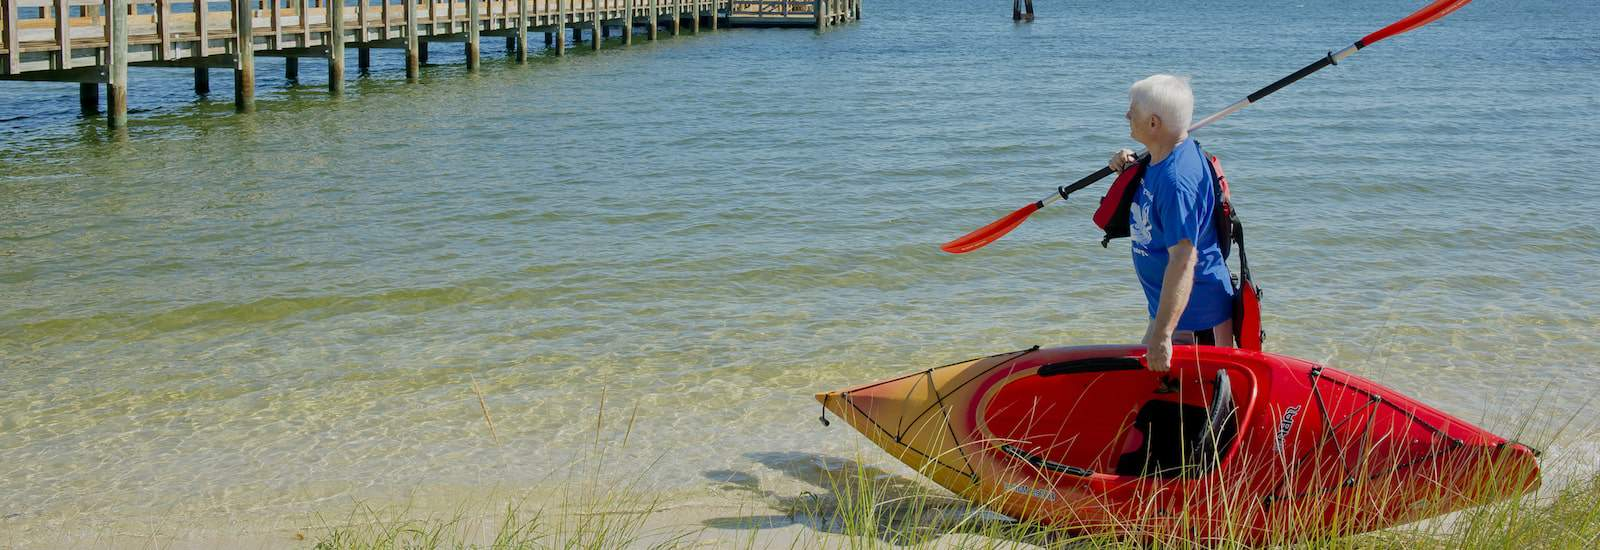 resident with a kayak along the water